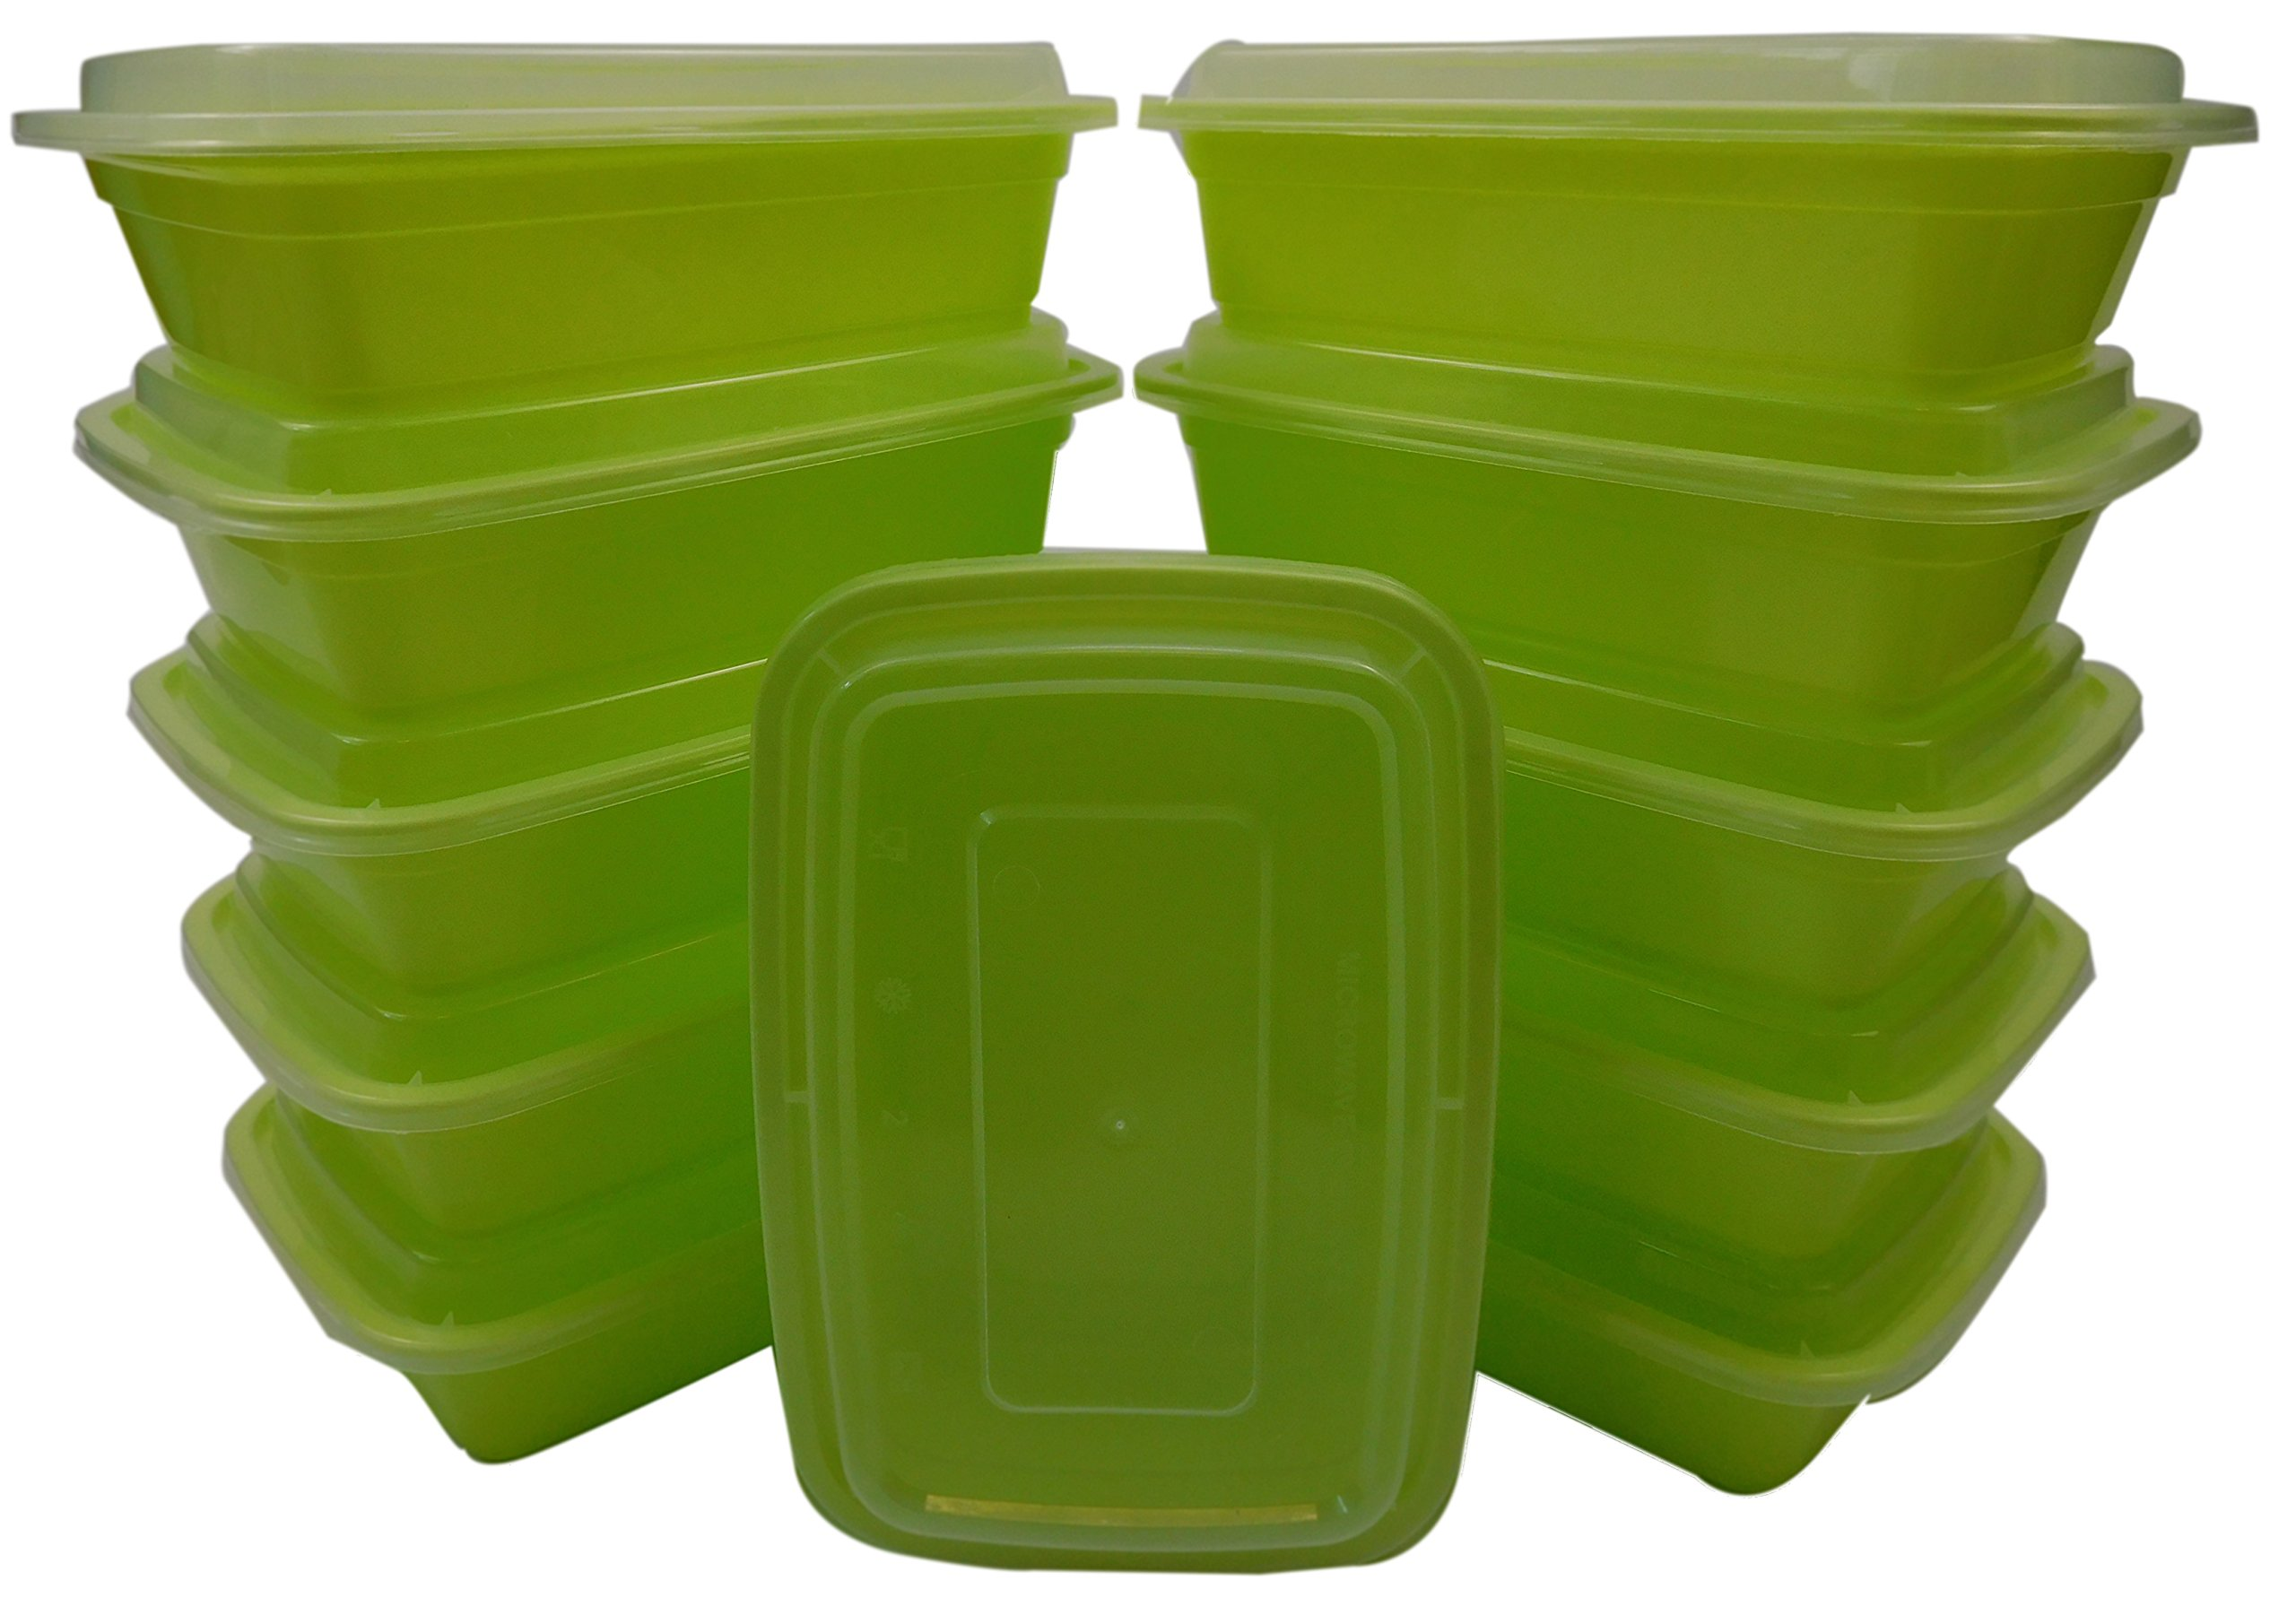 Table To Go 300-Pack Bento Lunch Boxes with Lids (1 Compartment/ 32 oz) | Microwaveable, Dishwasher & Freezer Safe Meal Prep Containers | Reusable Dish Set for Prepping, Portion Control & More (Green)